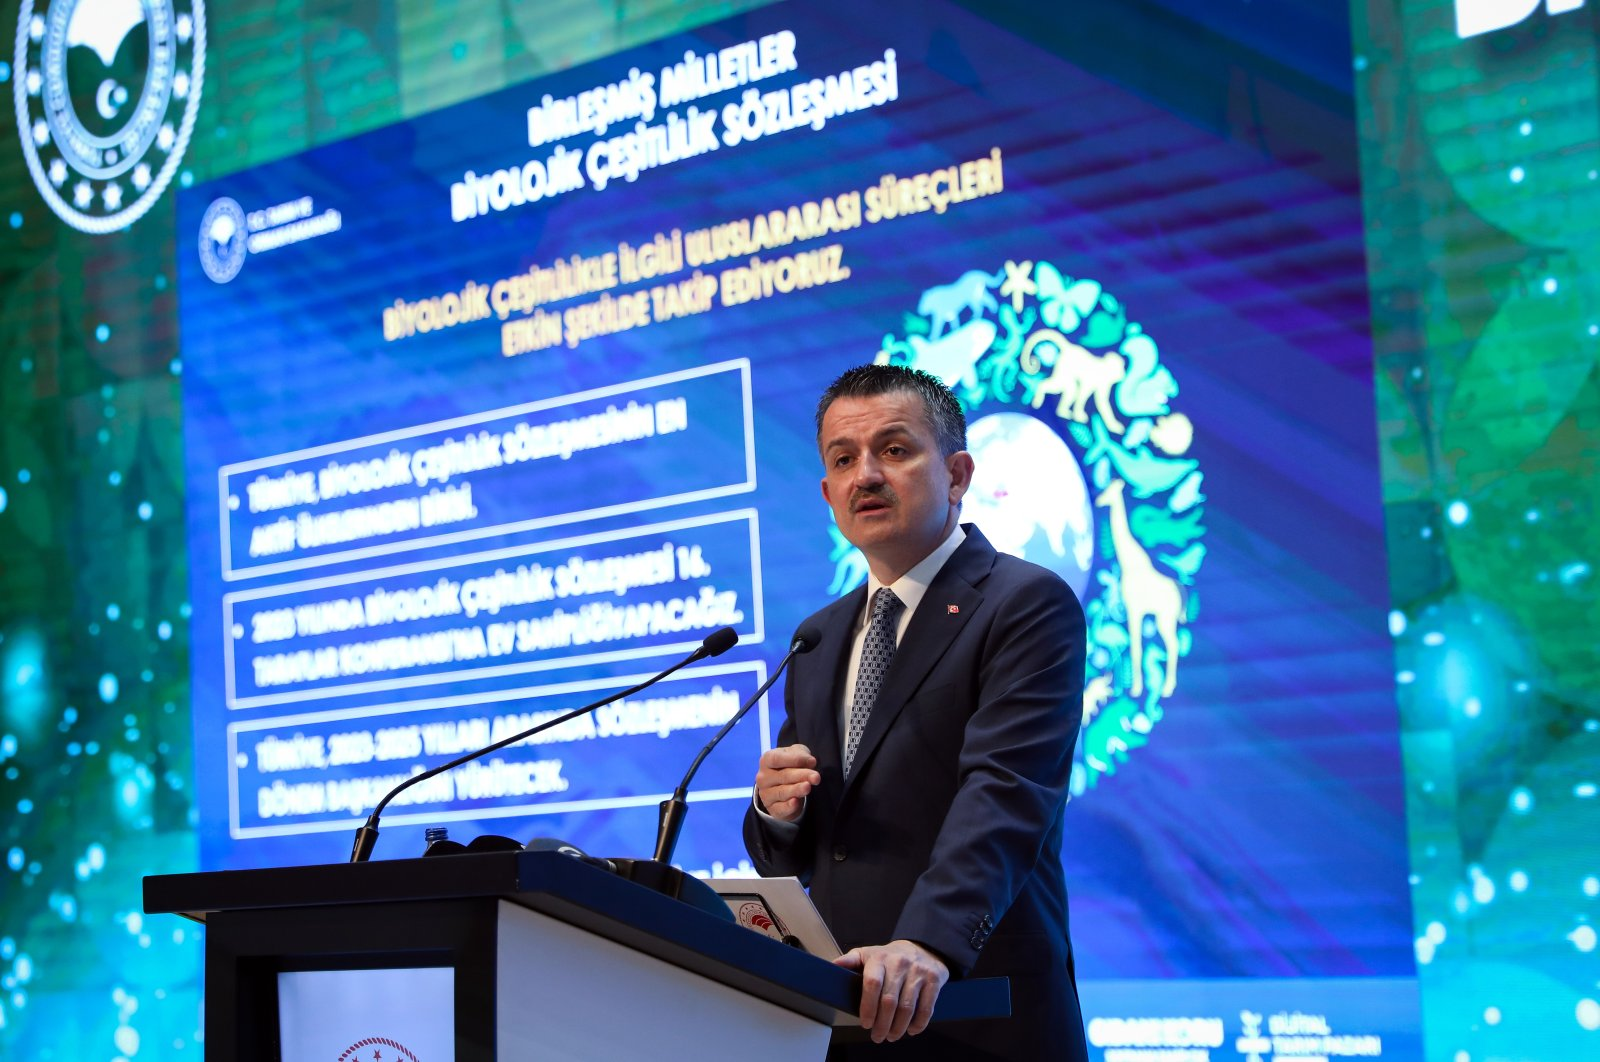 Minister of Agriculture and Forestry Bekir Pakdemirli speaks at the event on biodiversity, in the capital Ankara, Turkey, May 25, 2021. (AA PHOTO)